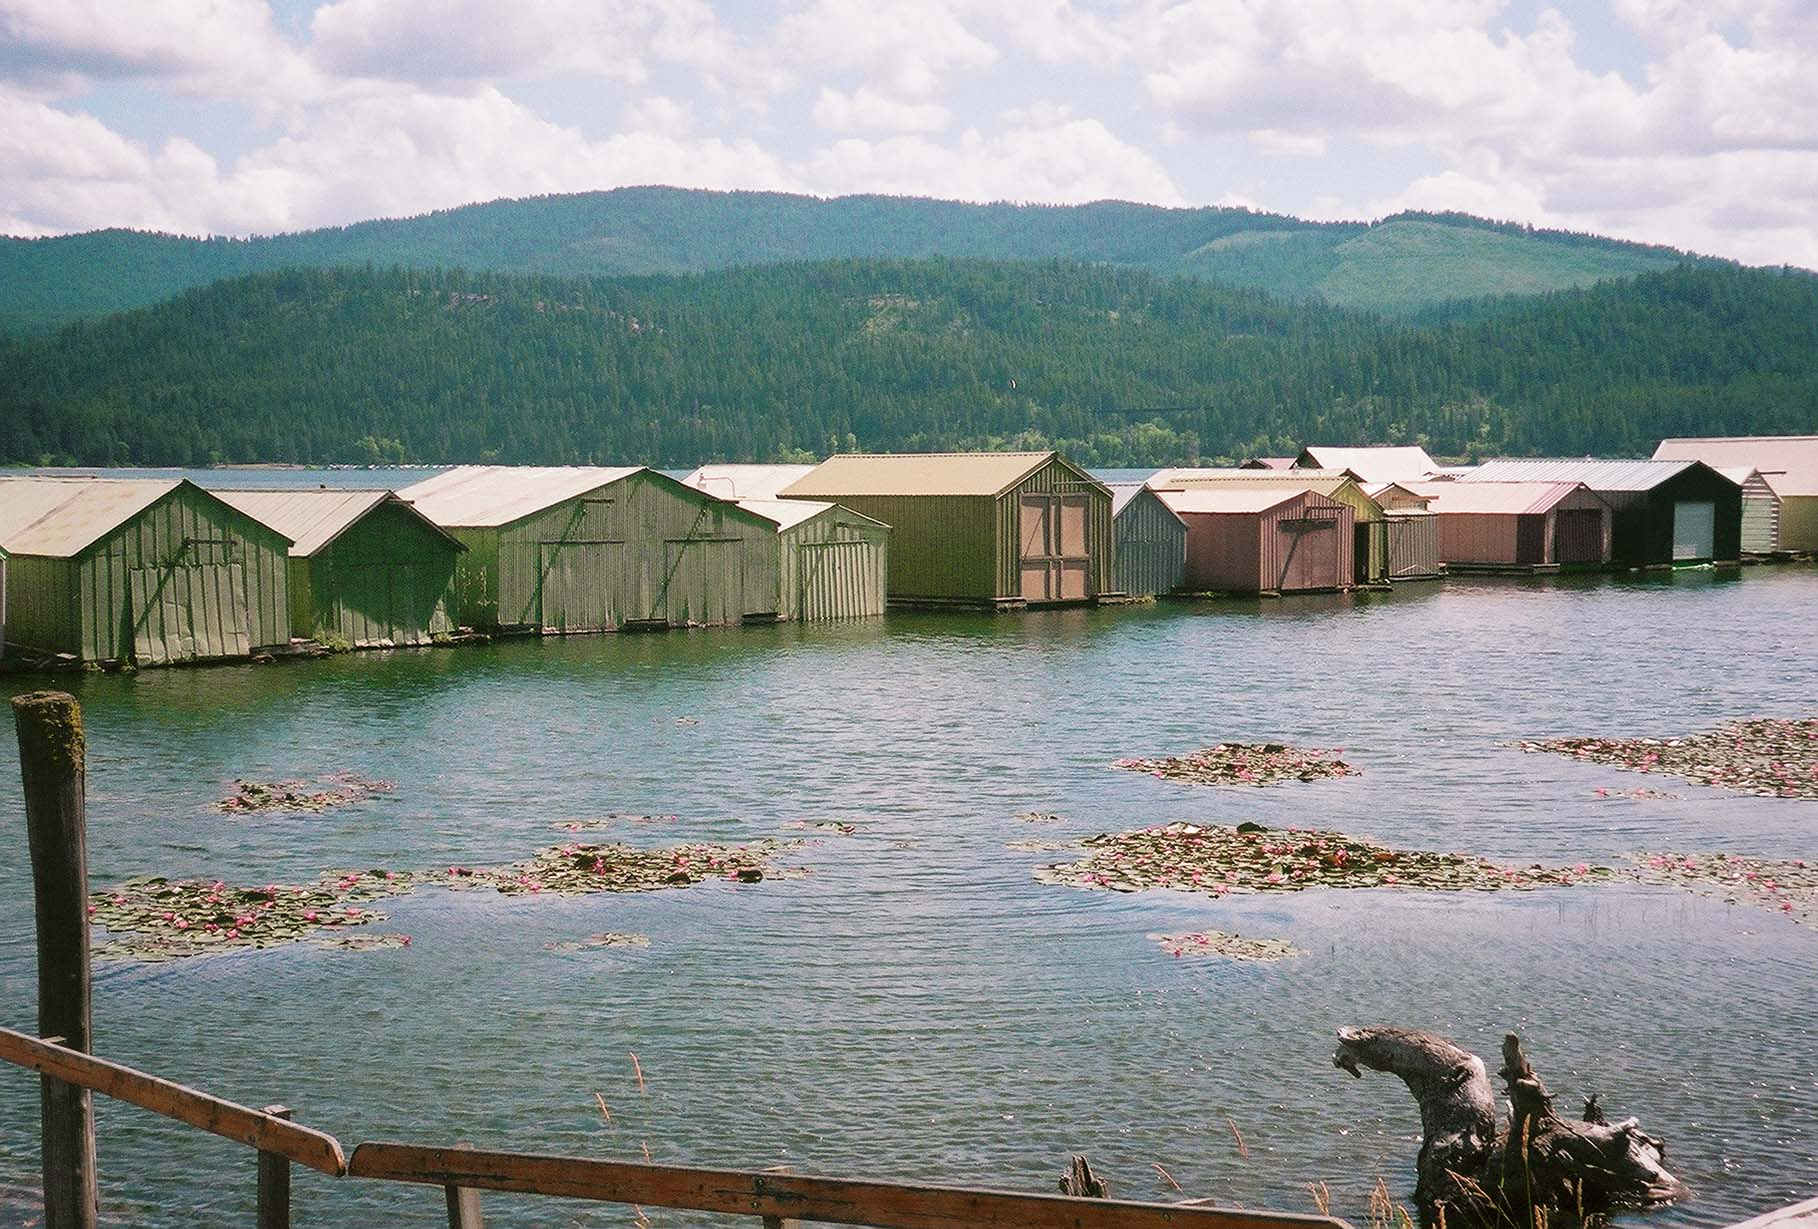 Boat Houses on the Trail